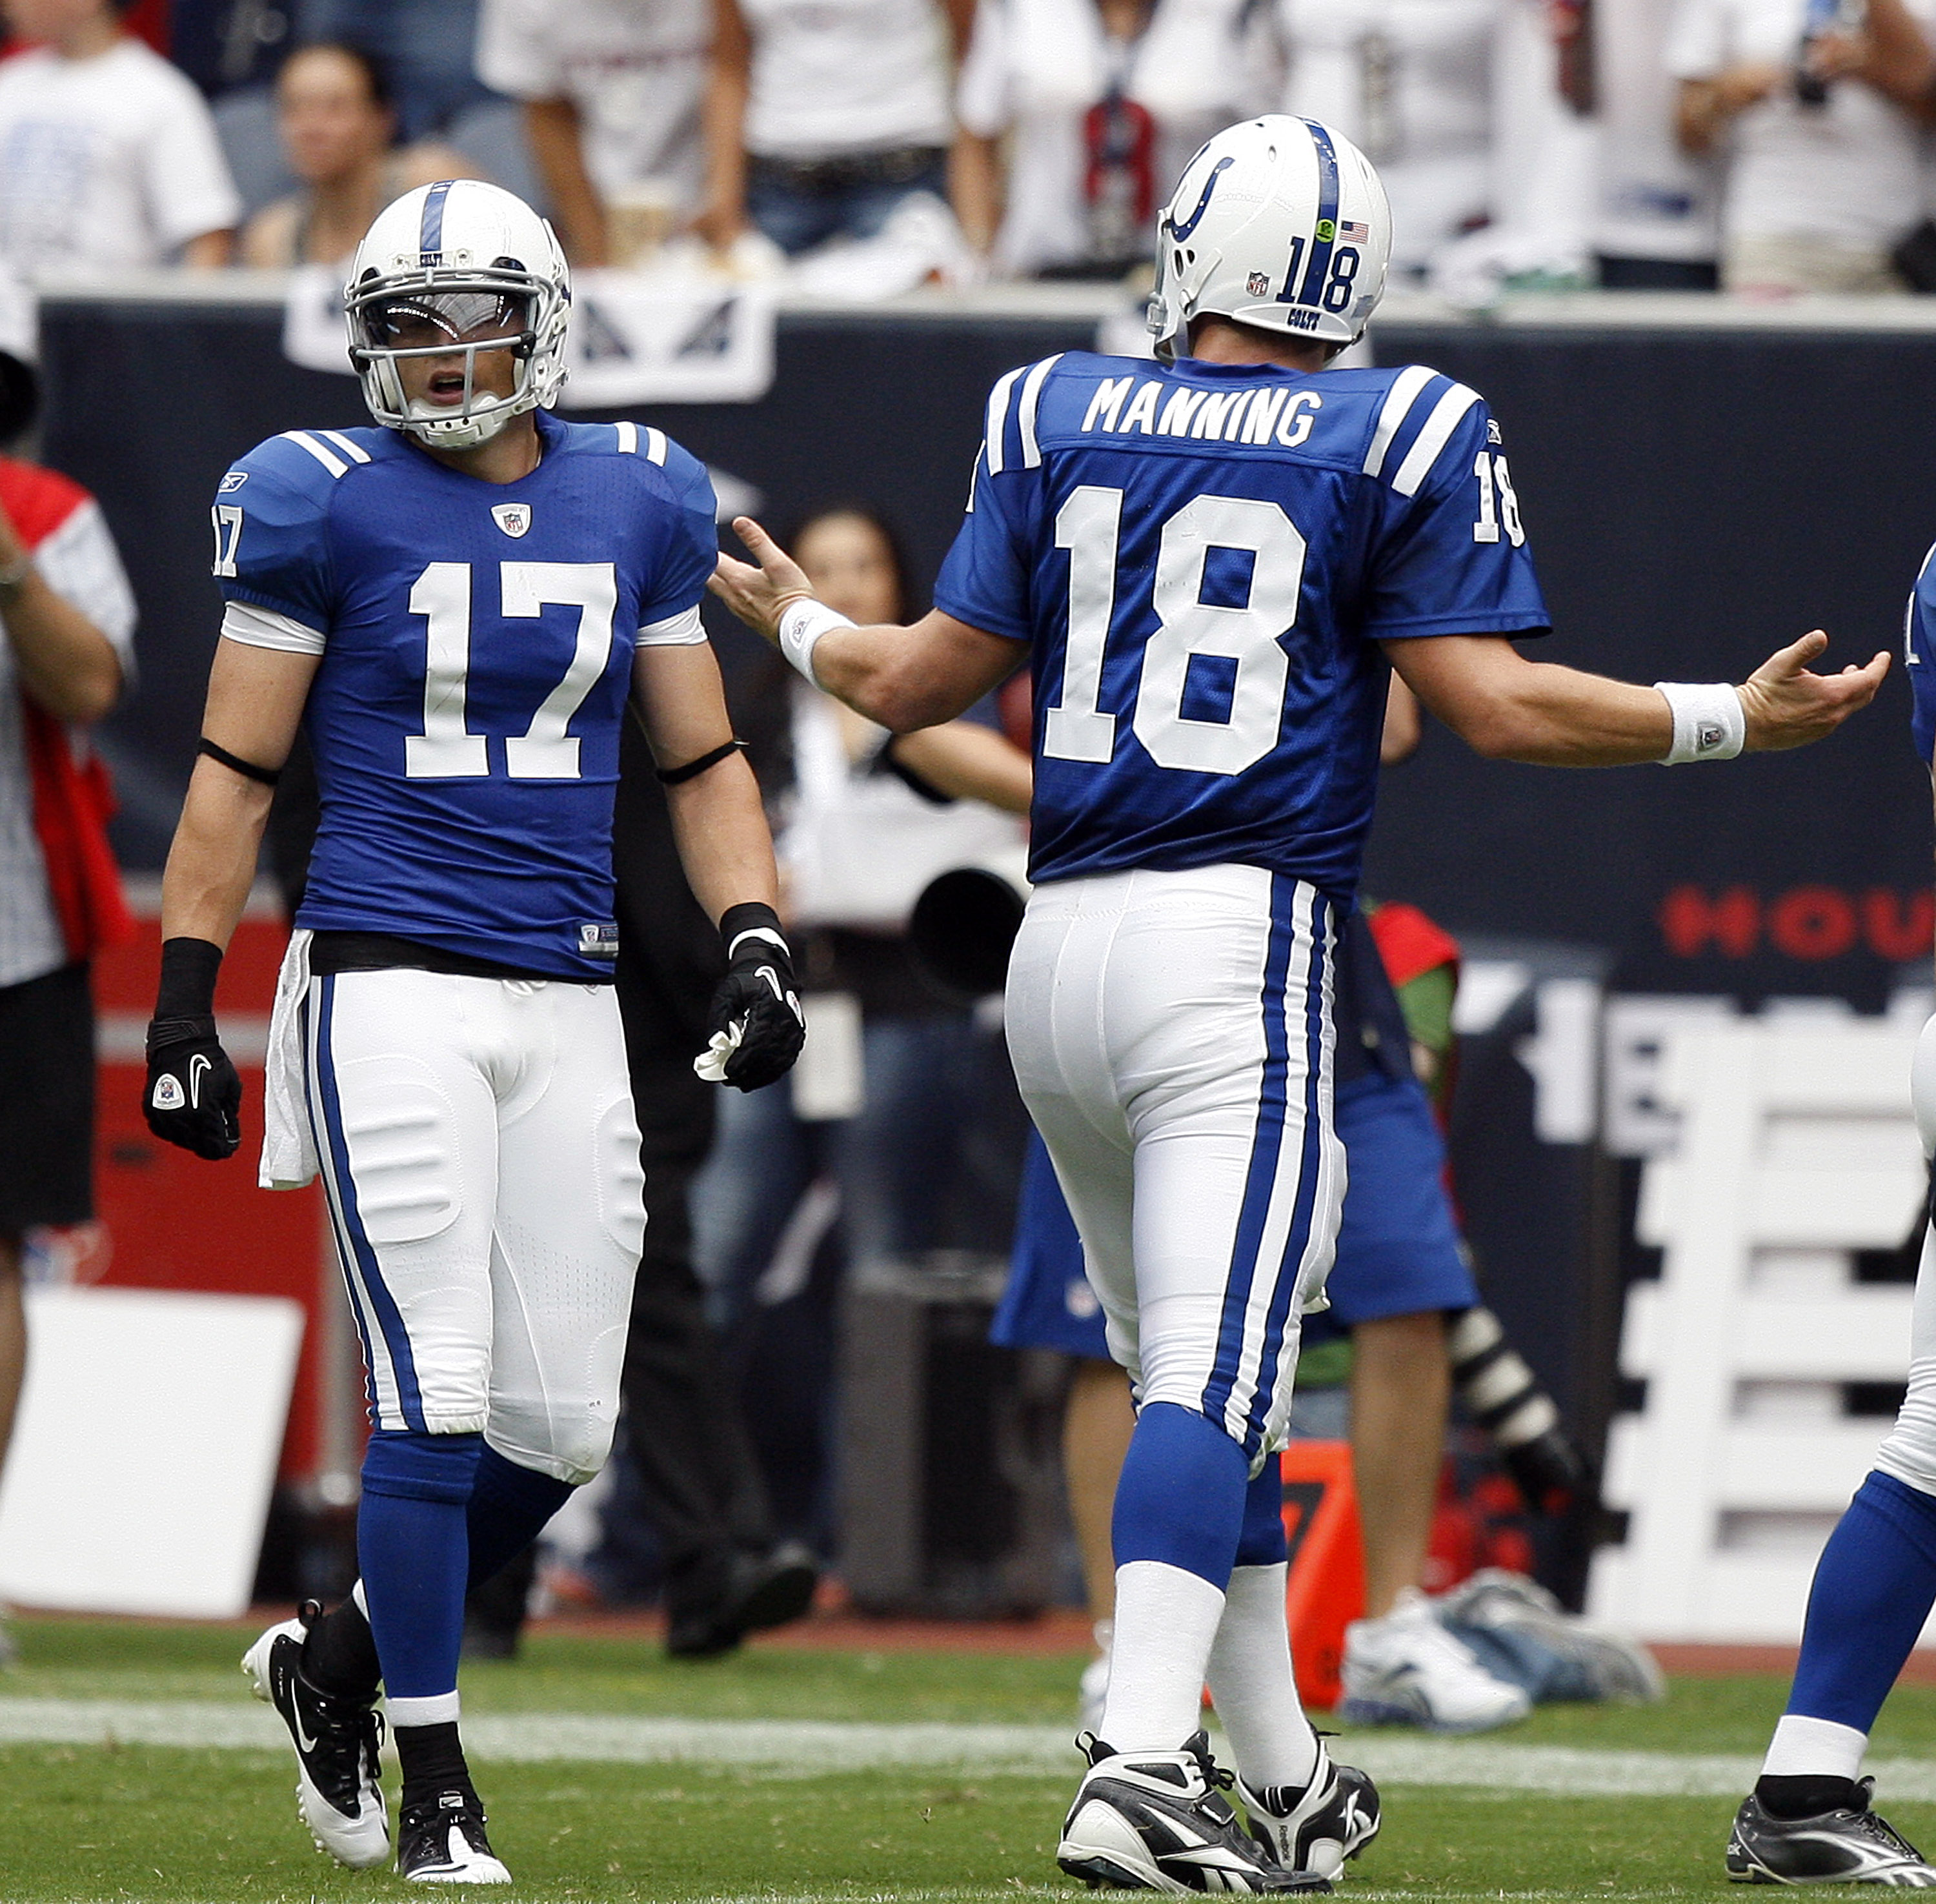 HOUSTON - SEPTEMBER 12:  Quarterback Peyton Manning #18 of the Indianapolis Colts gestures to wide receiver Austion Collie #17 after a change of possession against the Houston Texans during the NFL season opener at Reliant Stadium on September 12, 2010 in